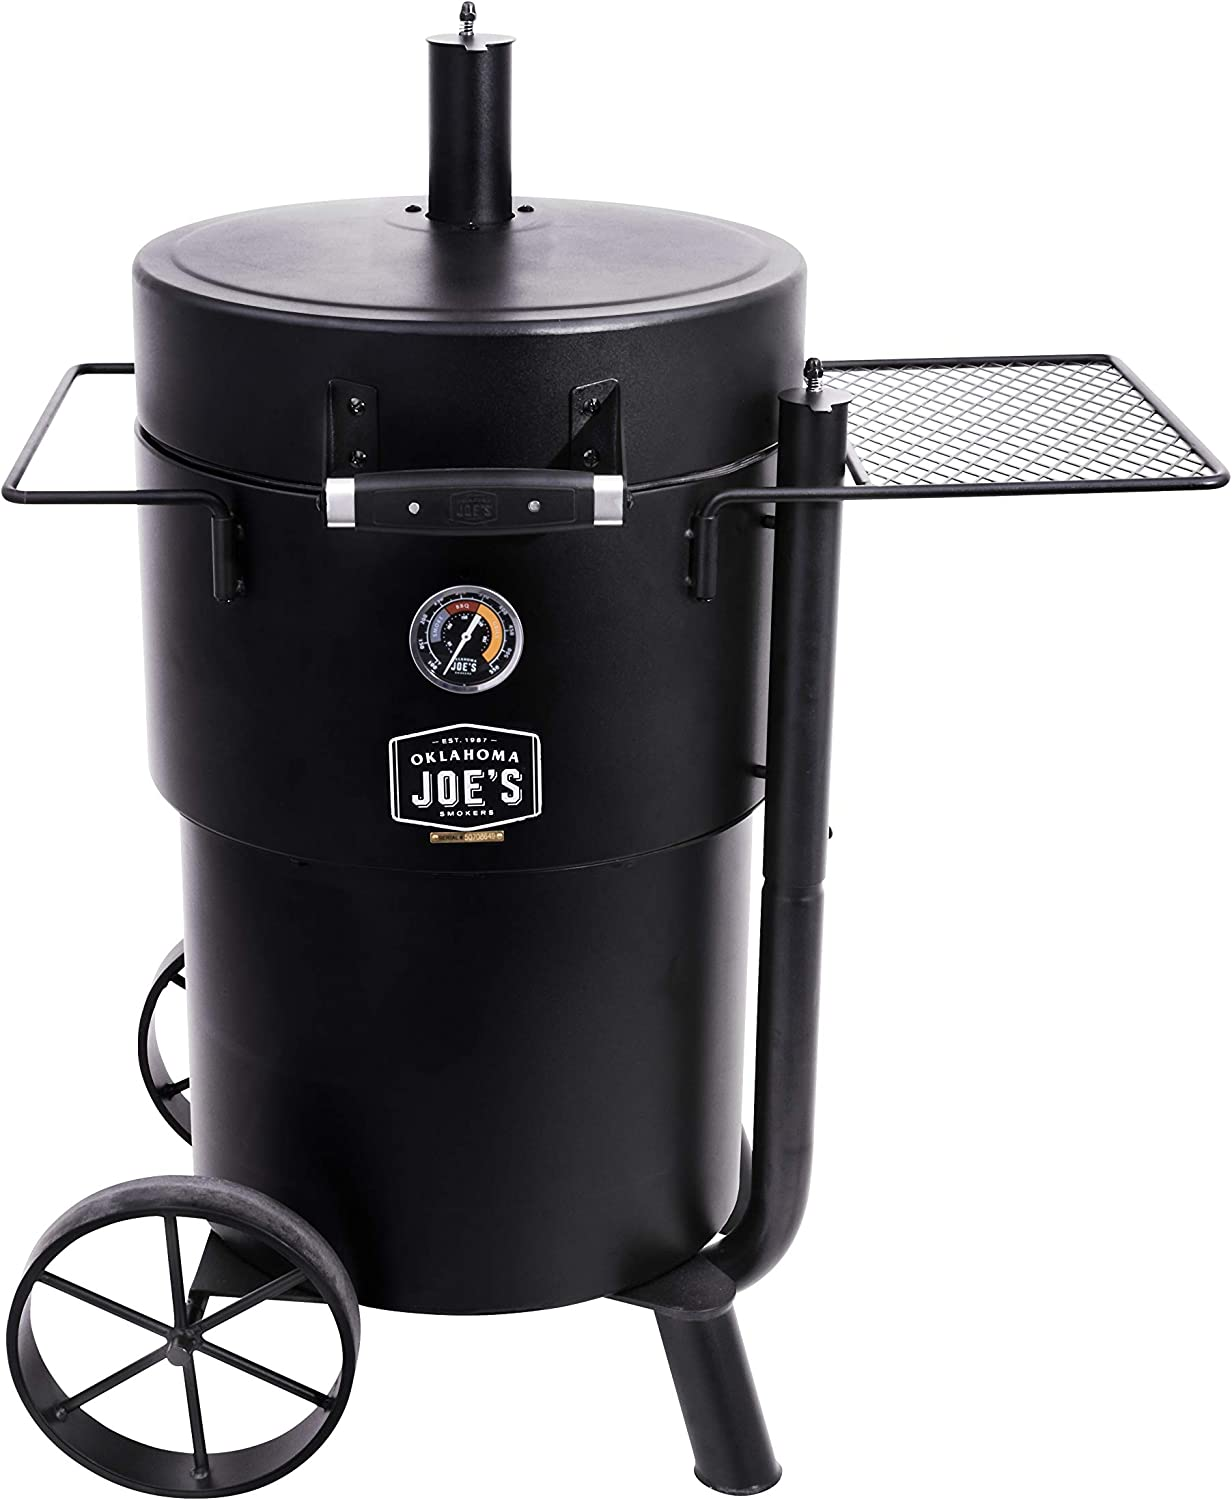 Oklahoma Joe's 19202089 Barrel Drum Smoker review